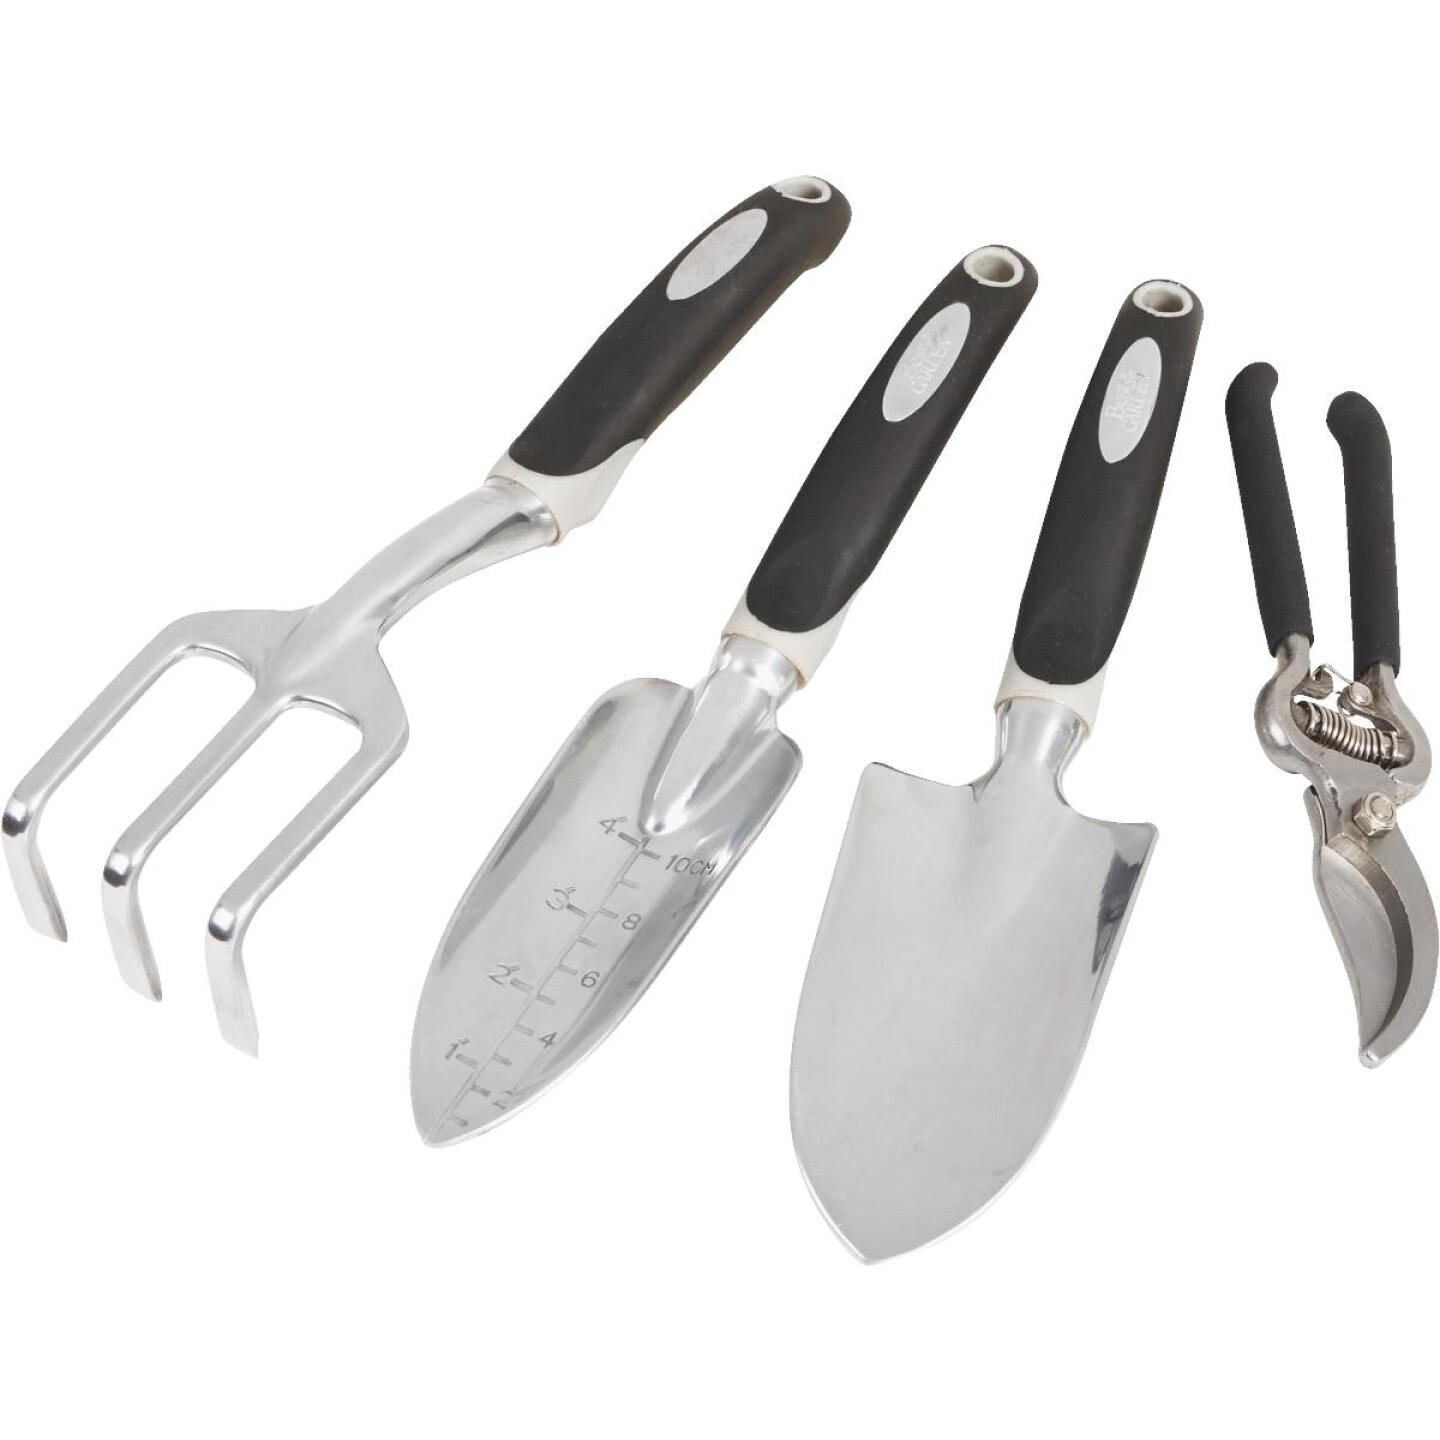 Best Garden Tool Set (4-Piece) Image 1